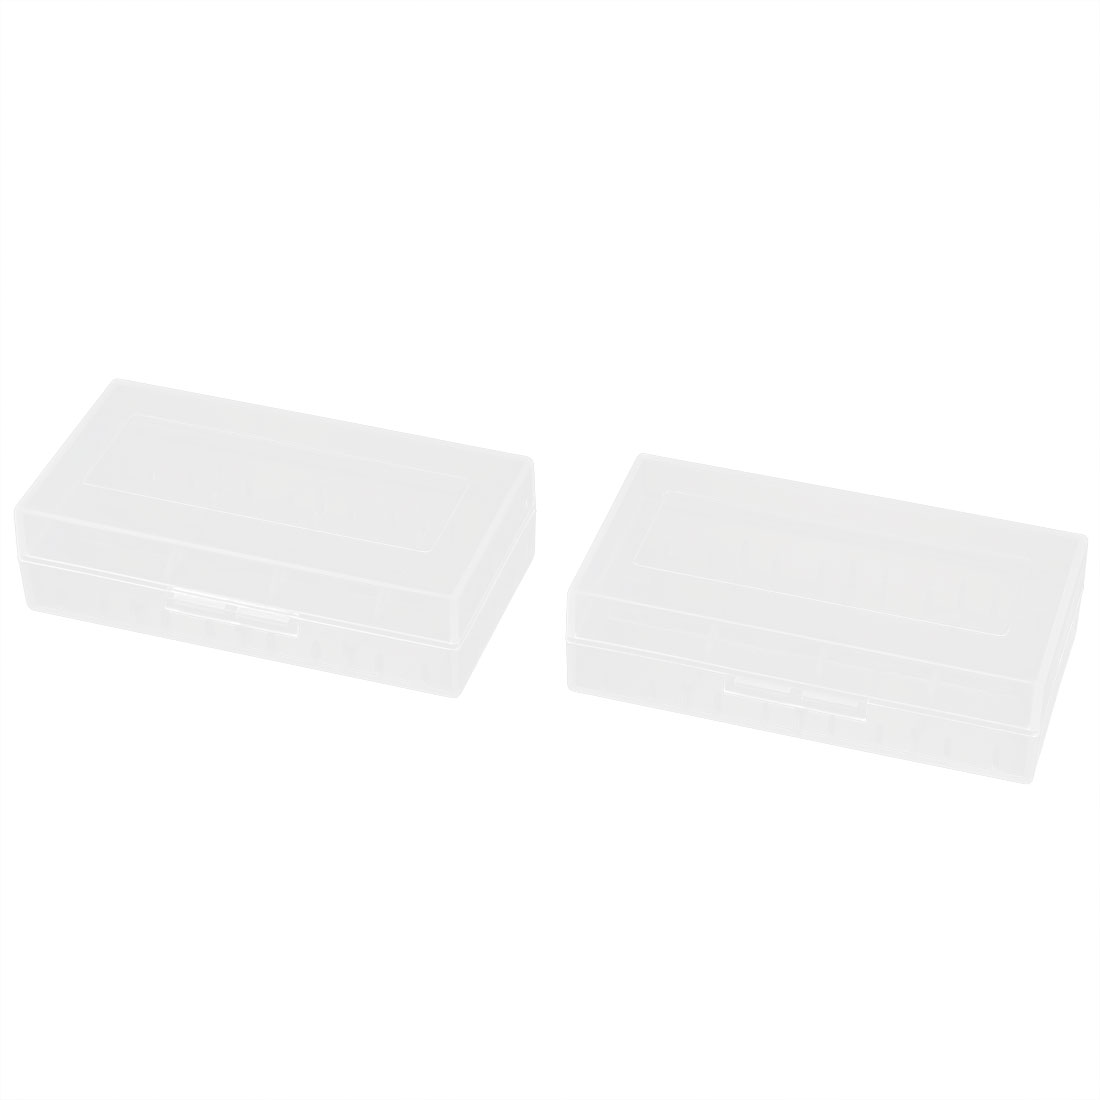 2pcs Clear Plastic Rectangle Storage Box Case Container Holder for 2 x 18650 Battery